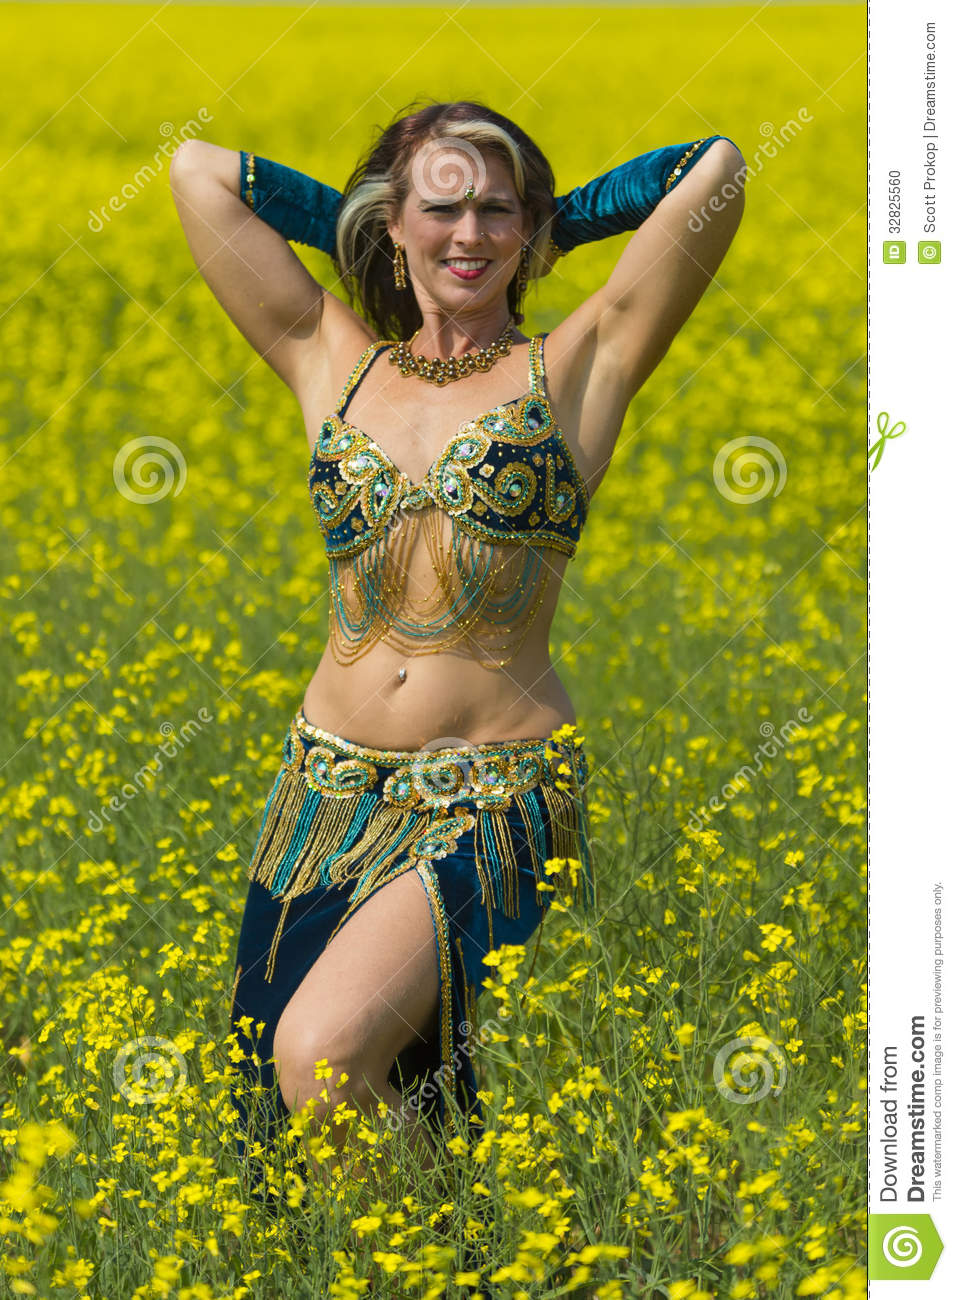 Young female belly dancer dressed in blue gold and white outfit in a